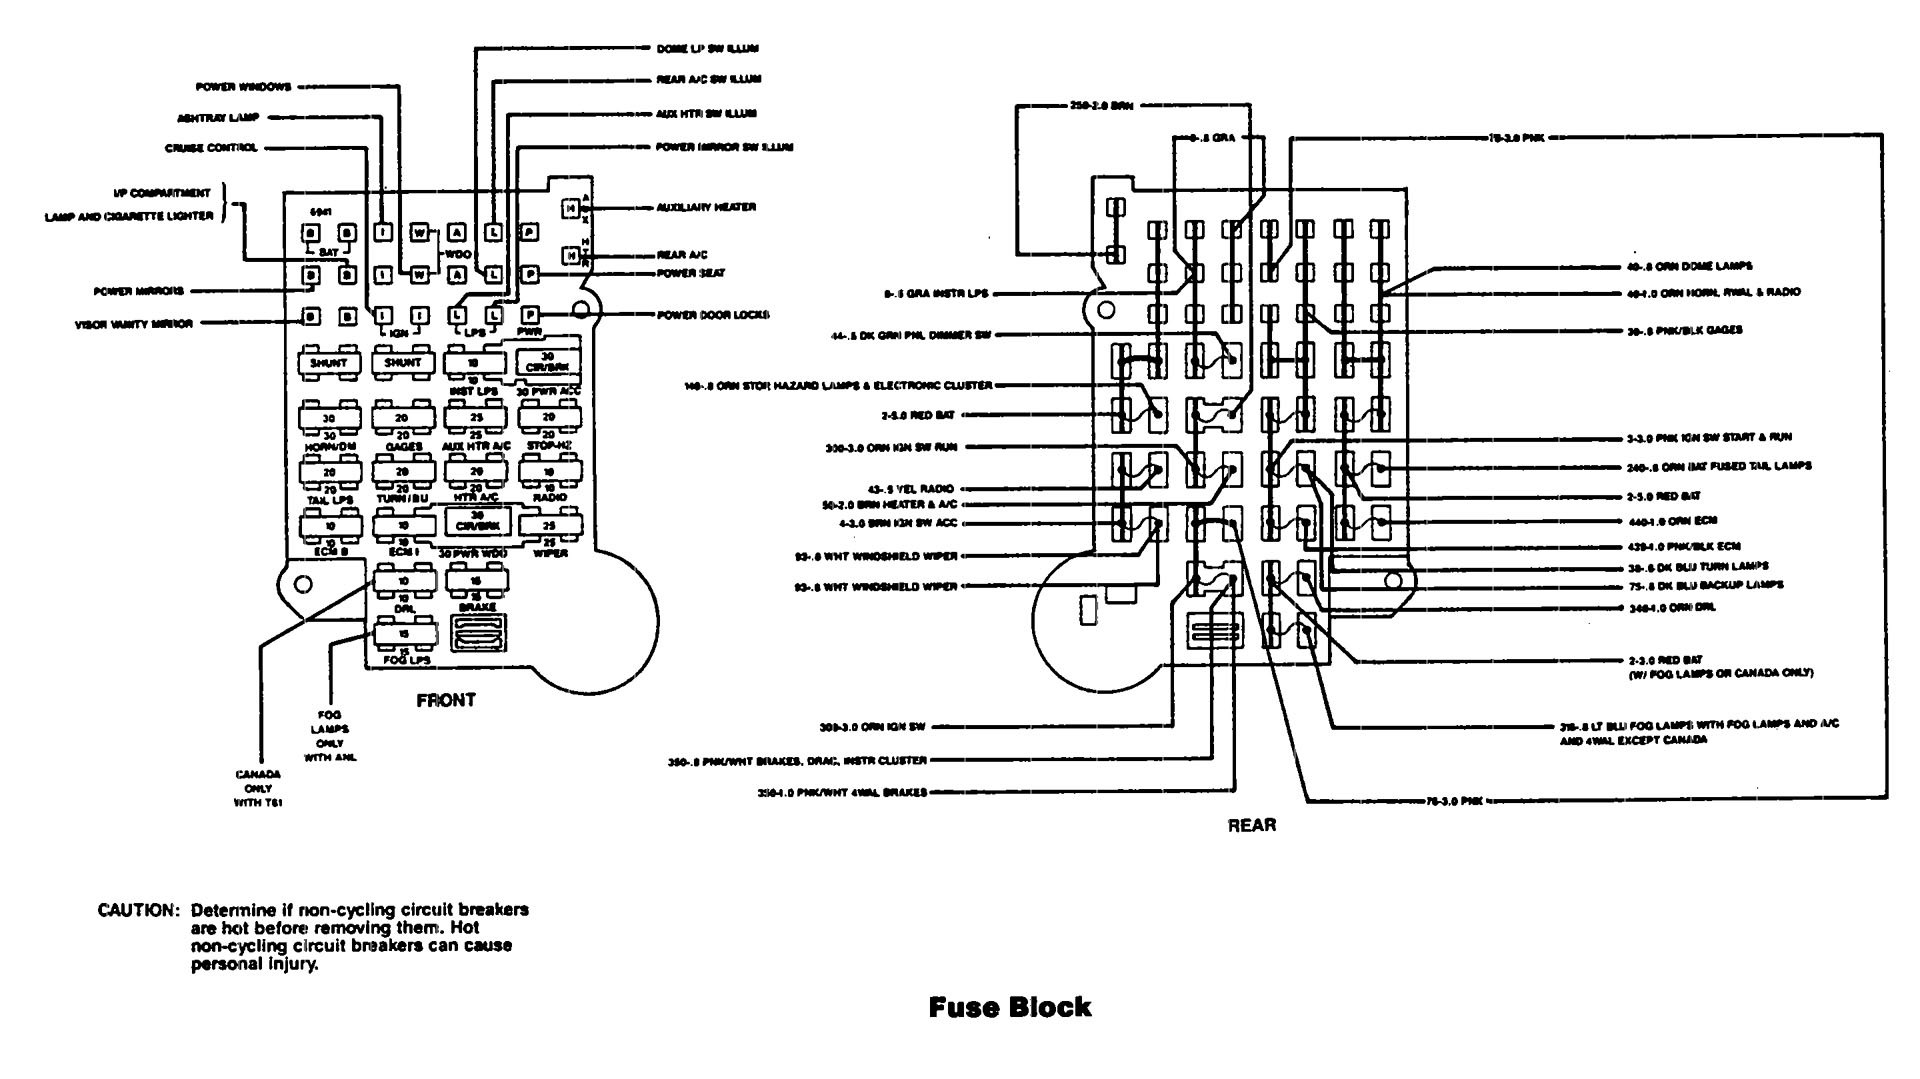 wiring diagram 91 chevy s10 blazer  u2013 electrical schematic